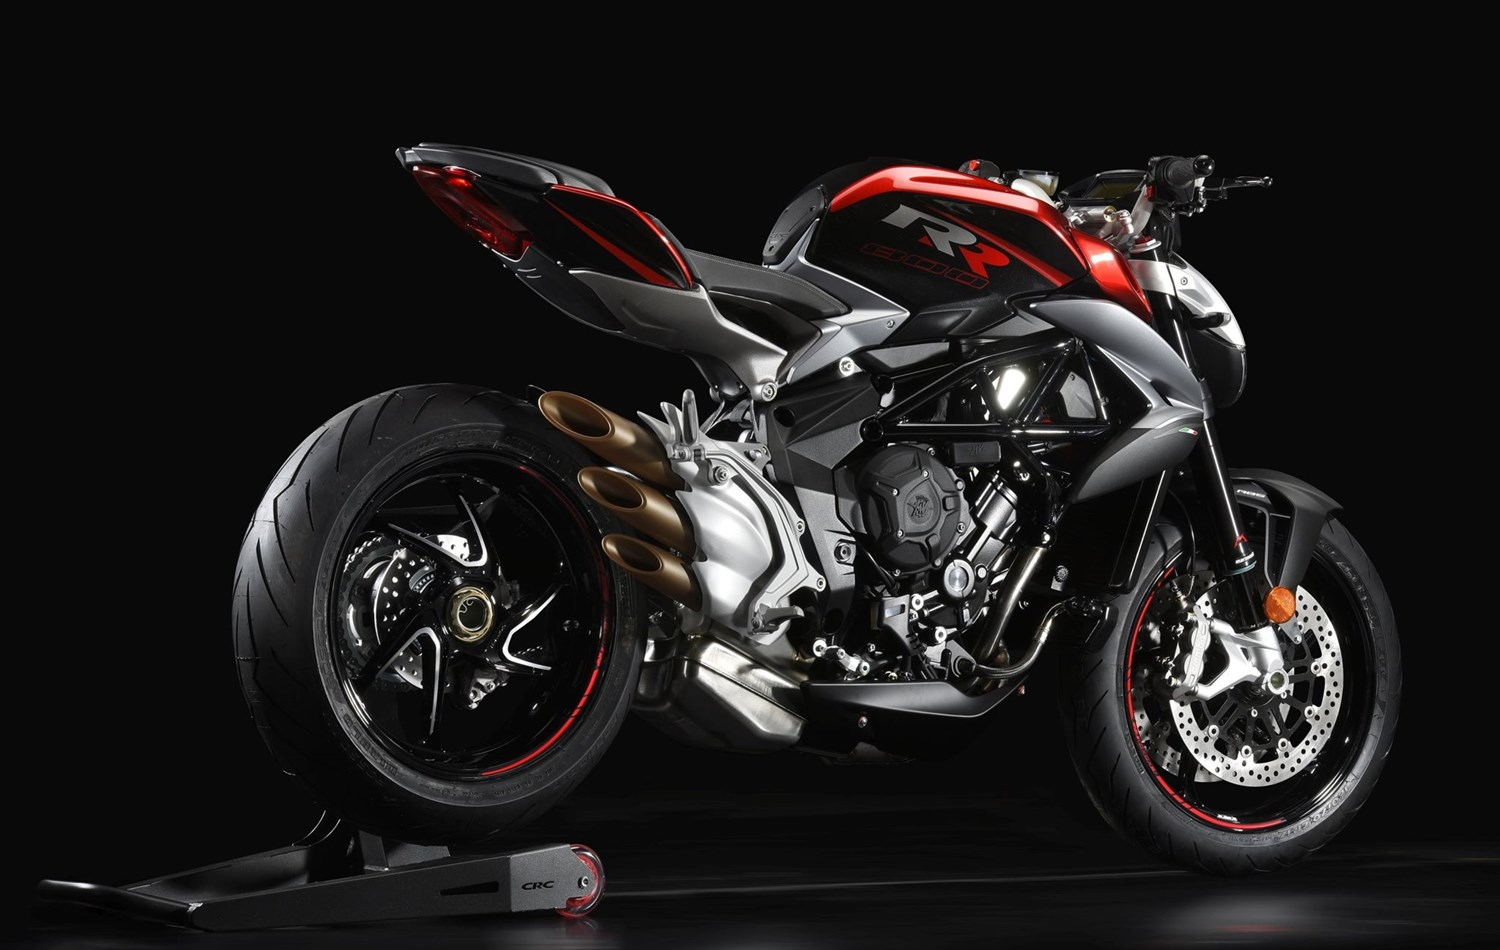 mv agusta brutale 800 rr alle technischen daten zum. Black Bedroom Furniture Sets. Home Design Ideas